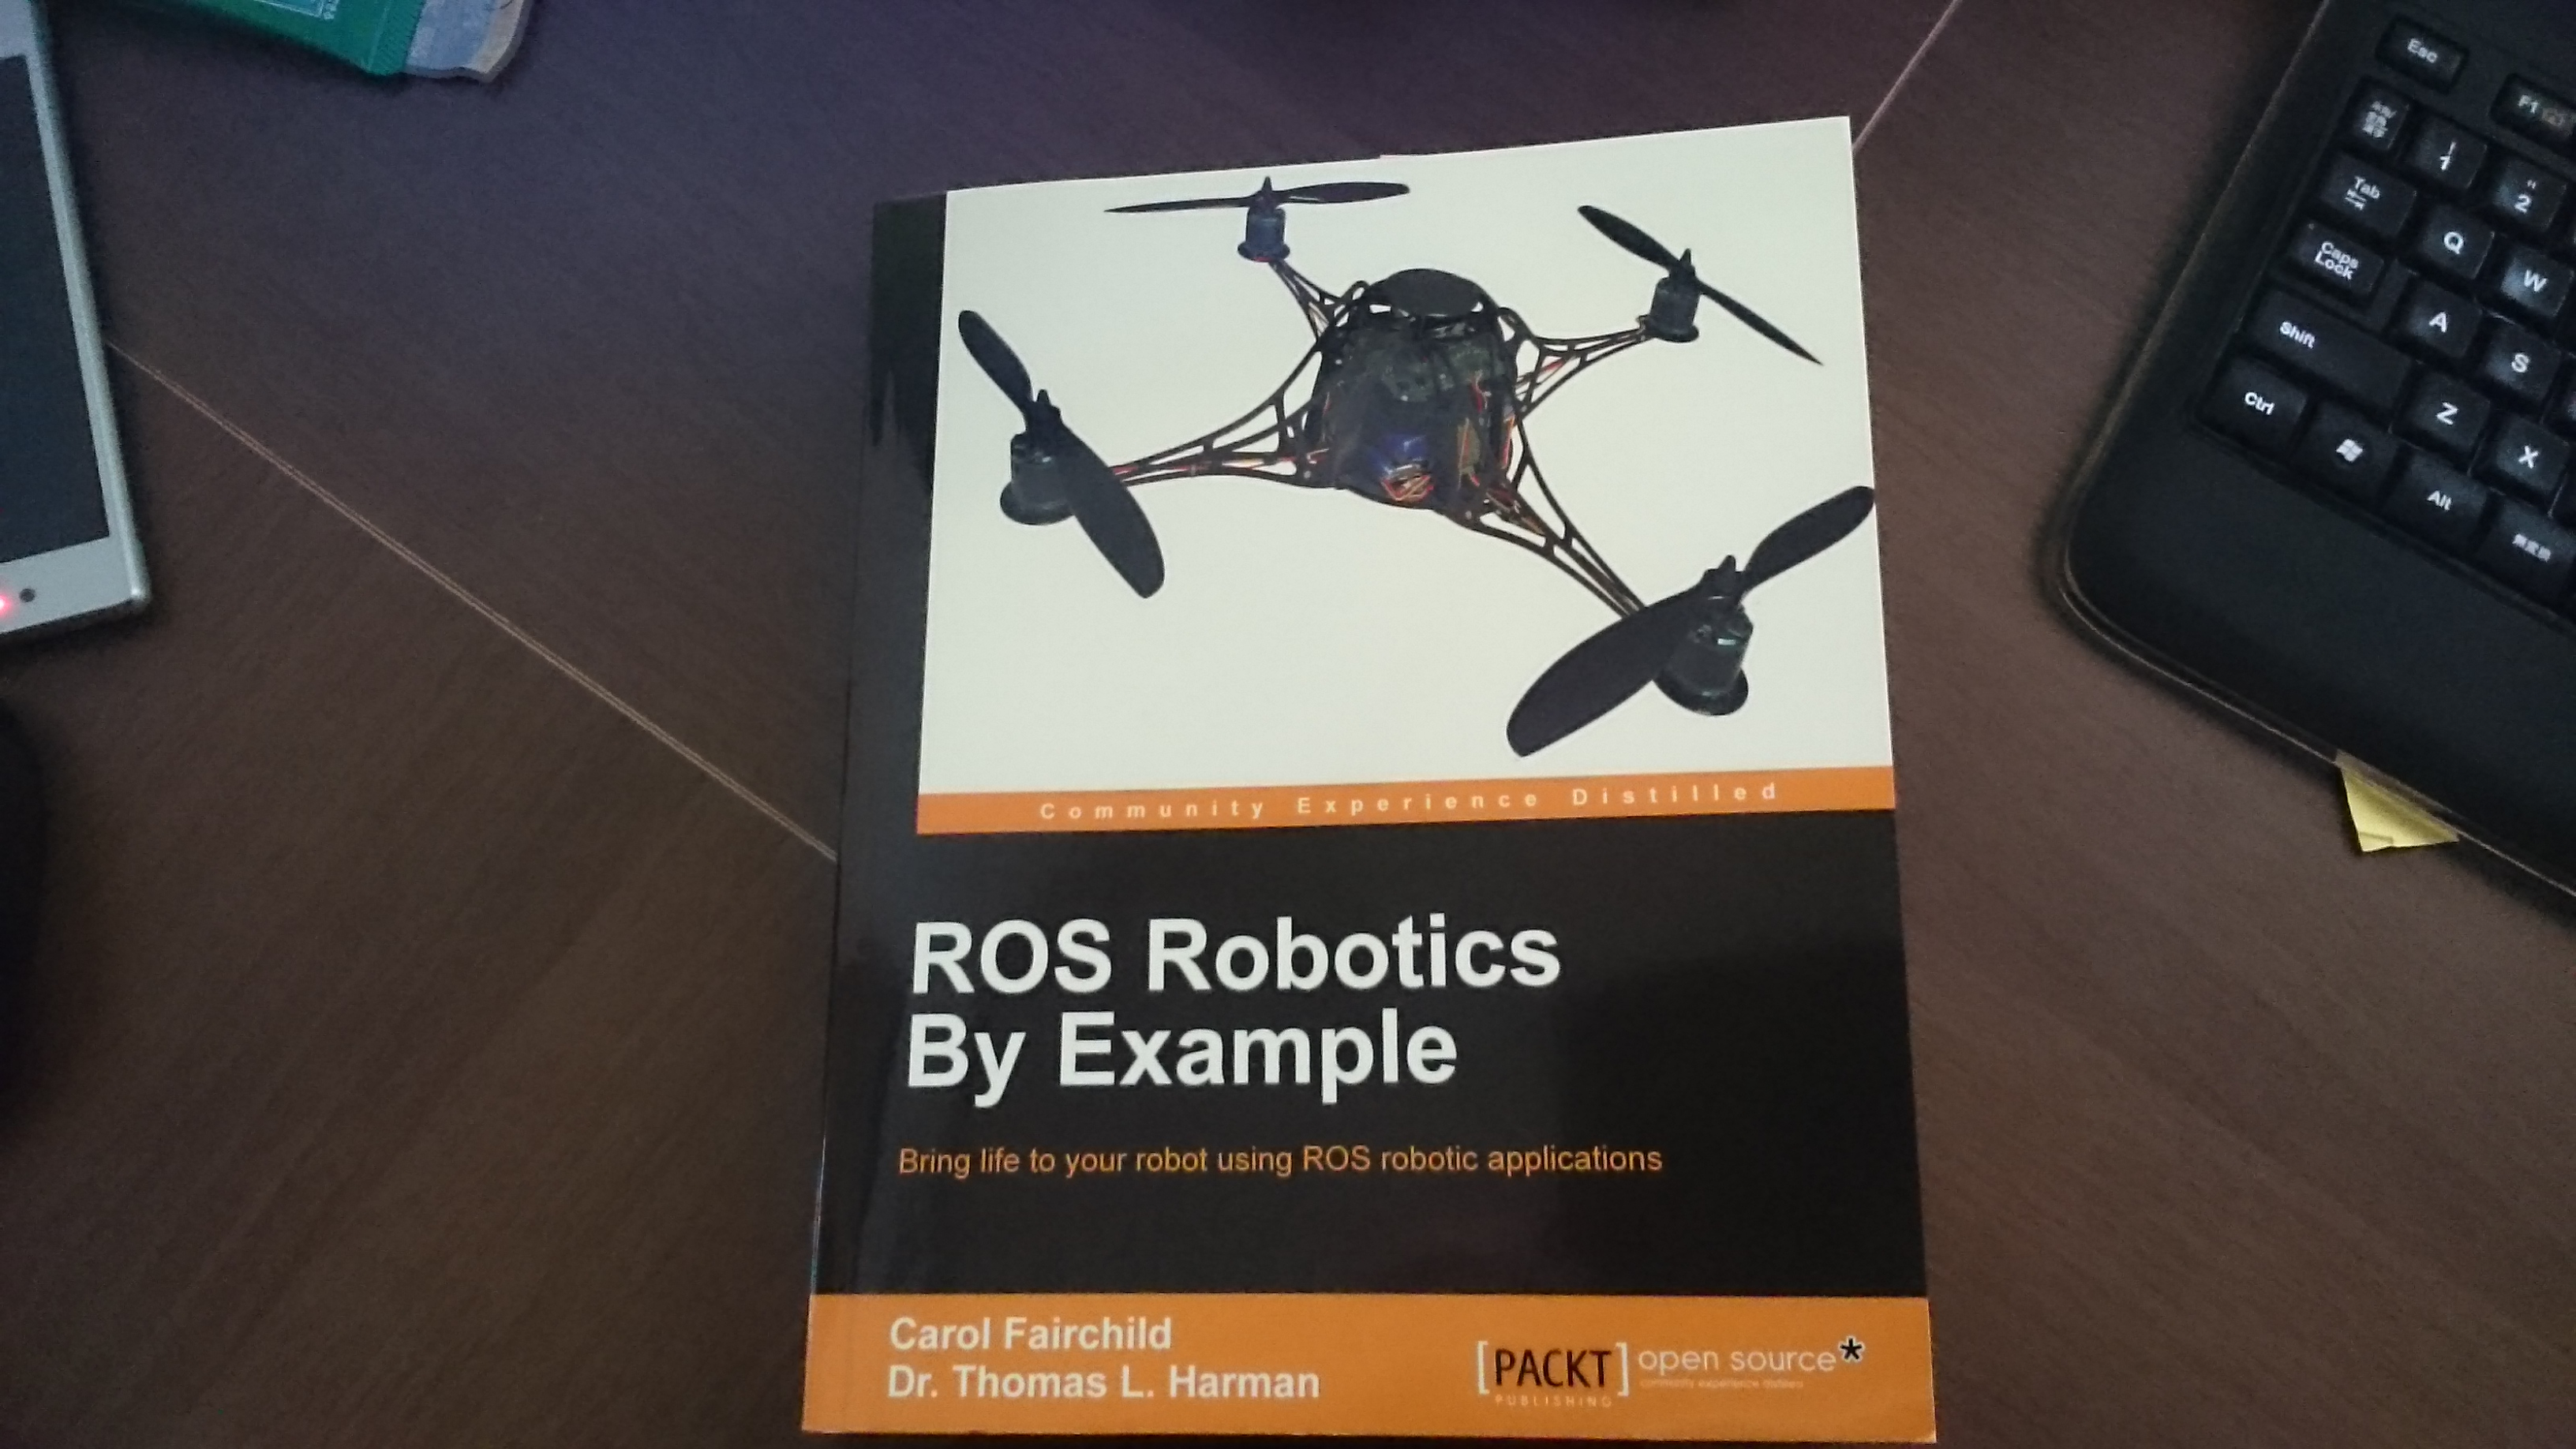 ROS RObotics by Exsmple